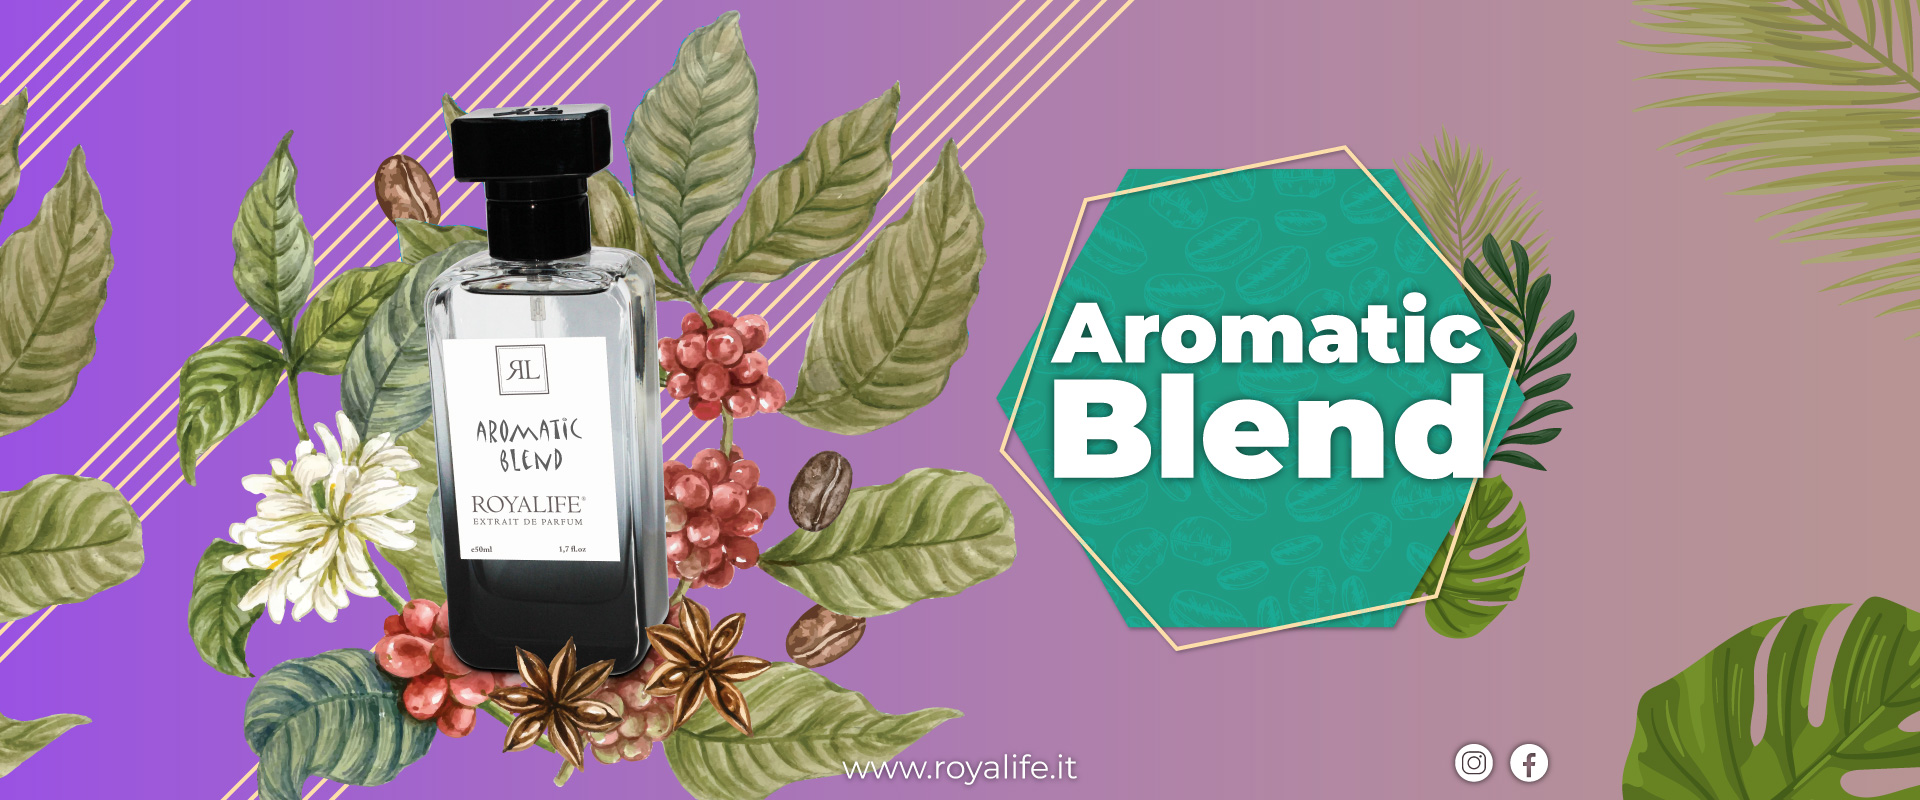 Aromatic-Blend-07-2020-2-1-